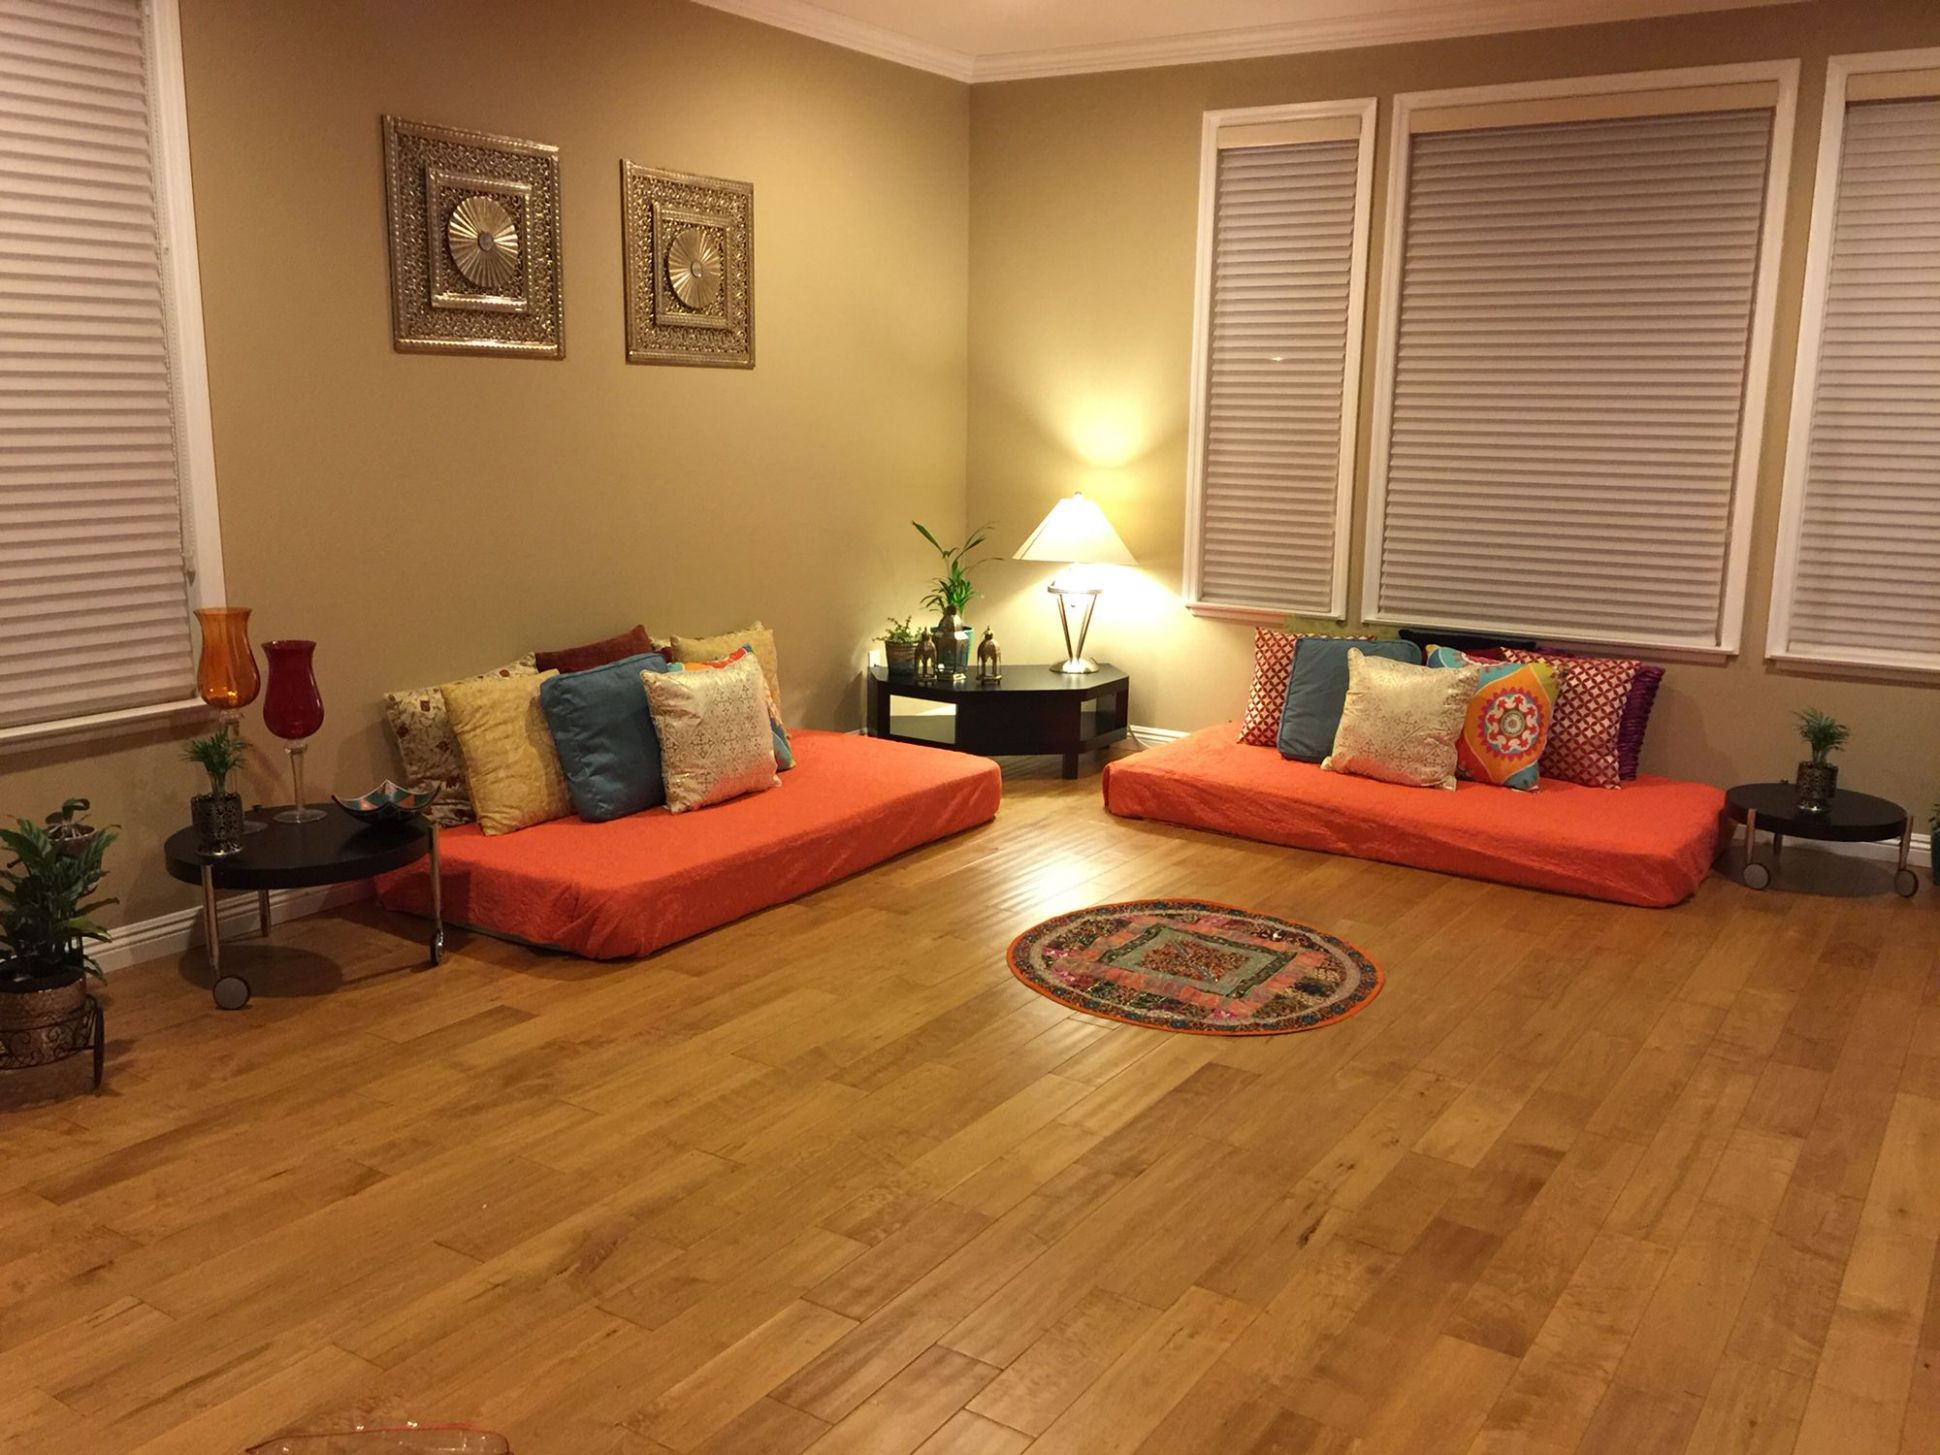 Indian inspired living room … (With images) | Floor seating living ..